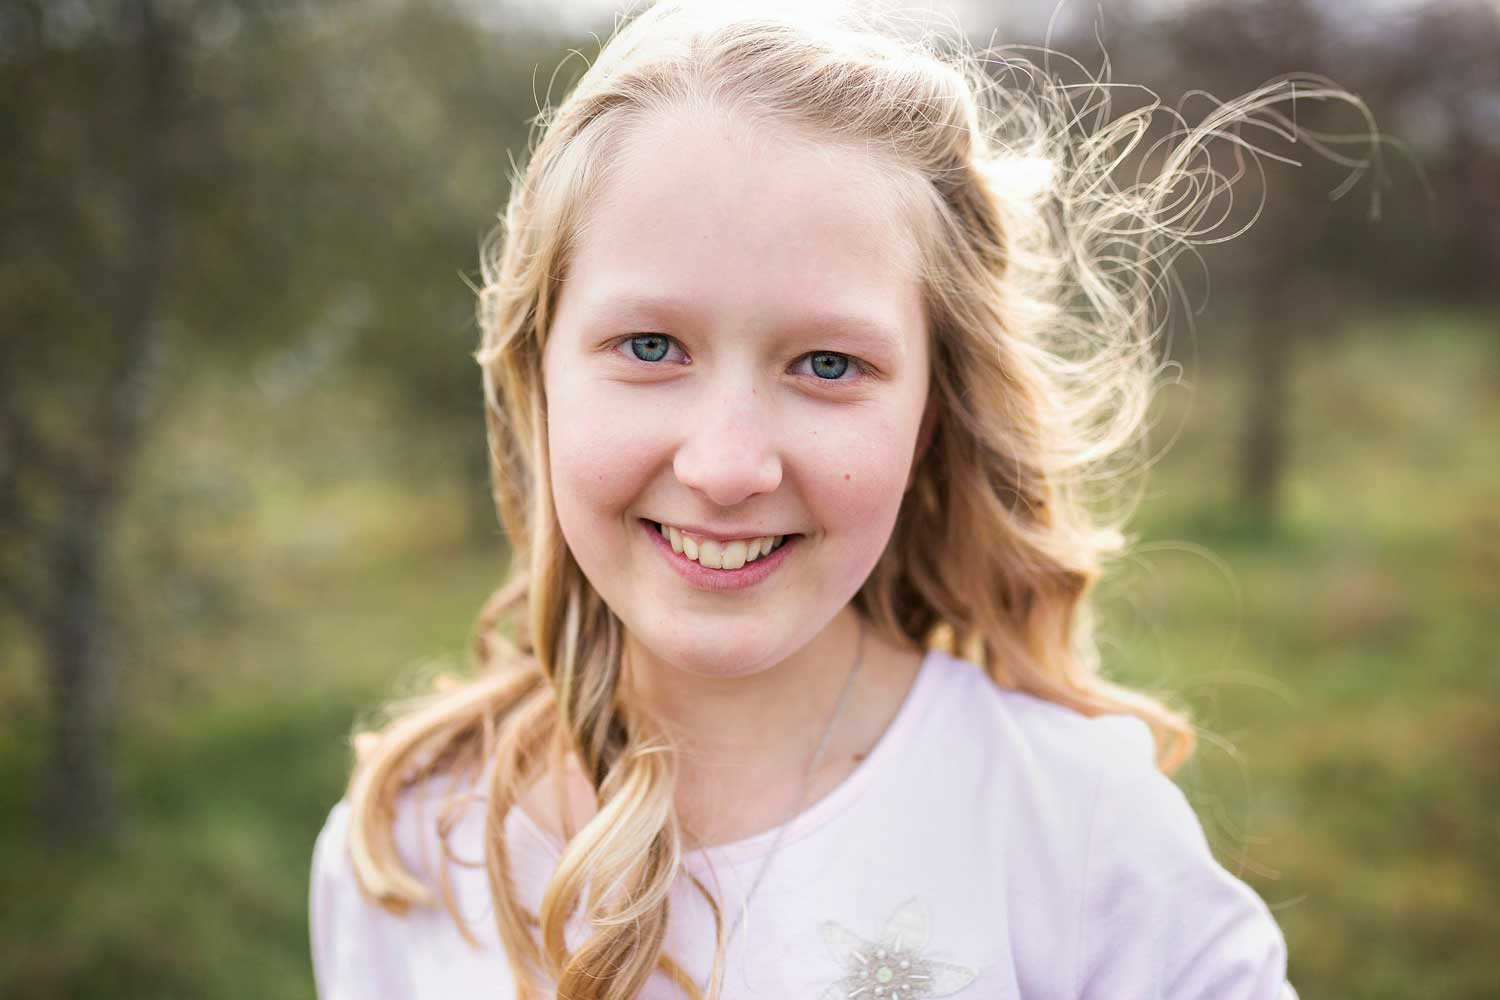 A tween girl looks at the camera and smiles in Sacramento, California with Amy Wright Photography.